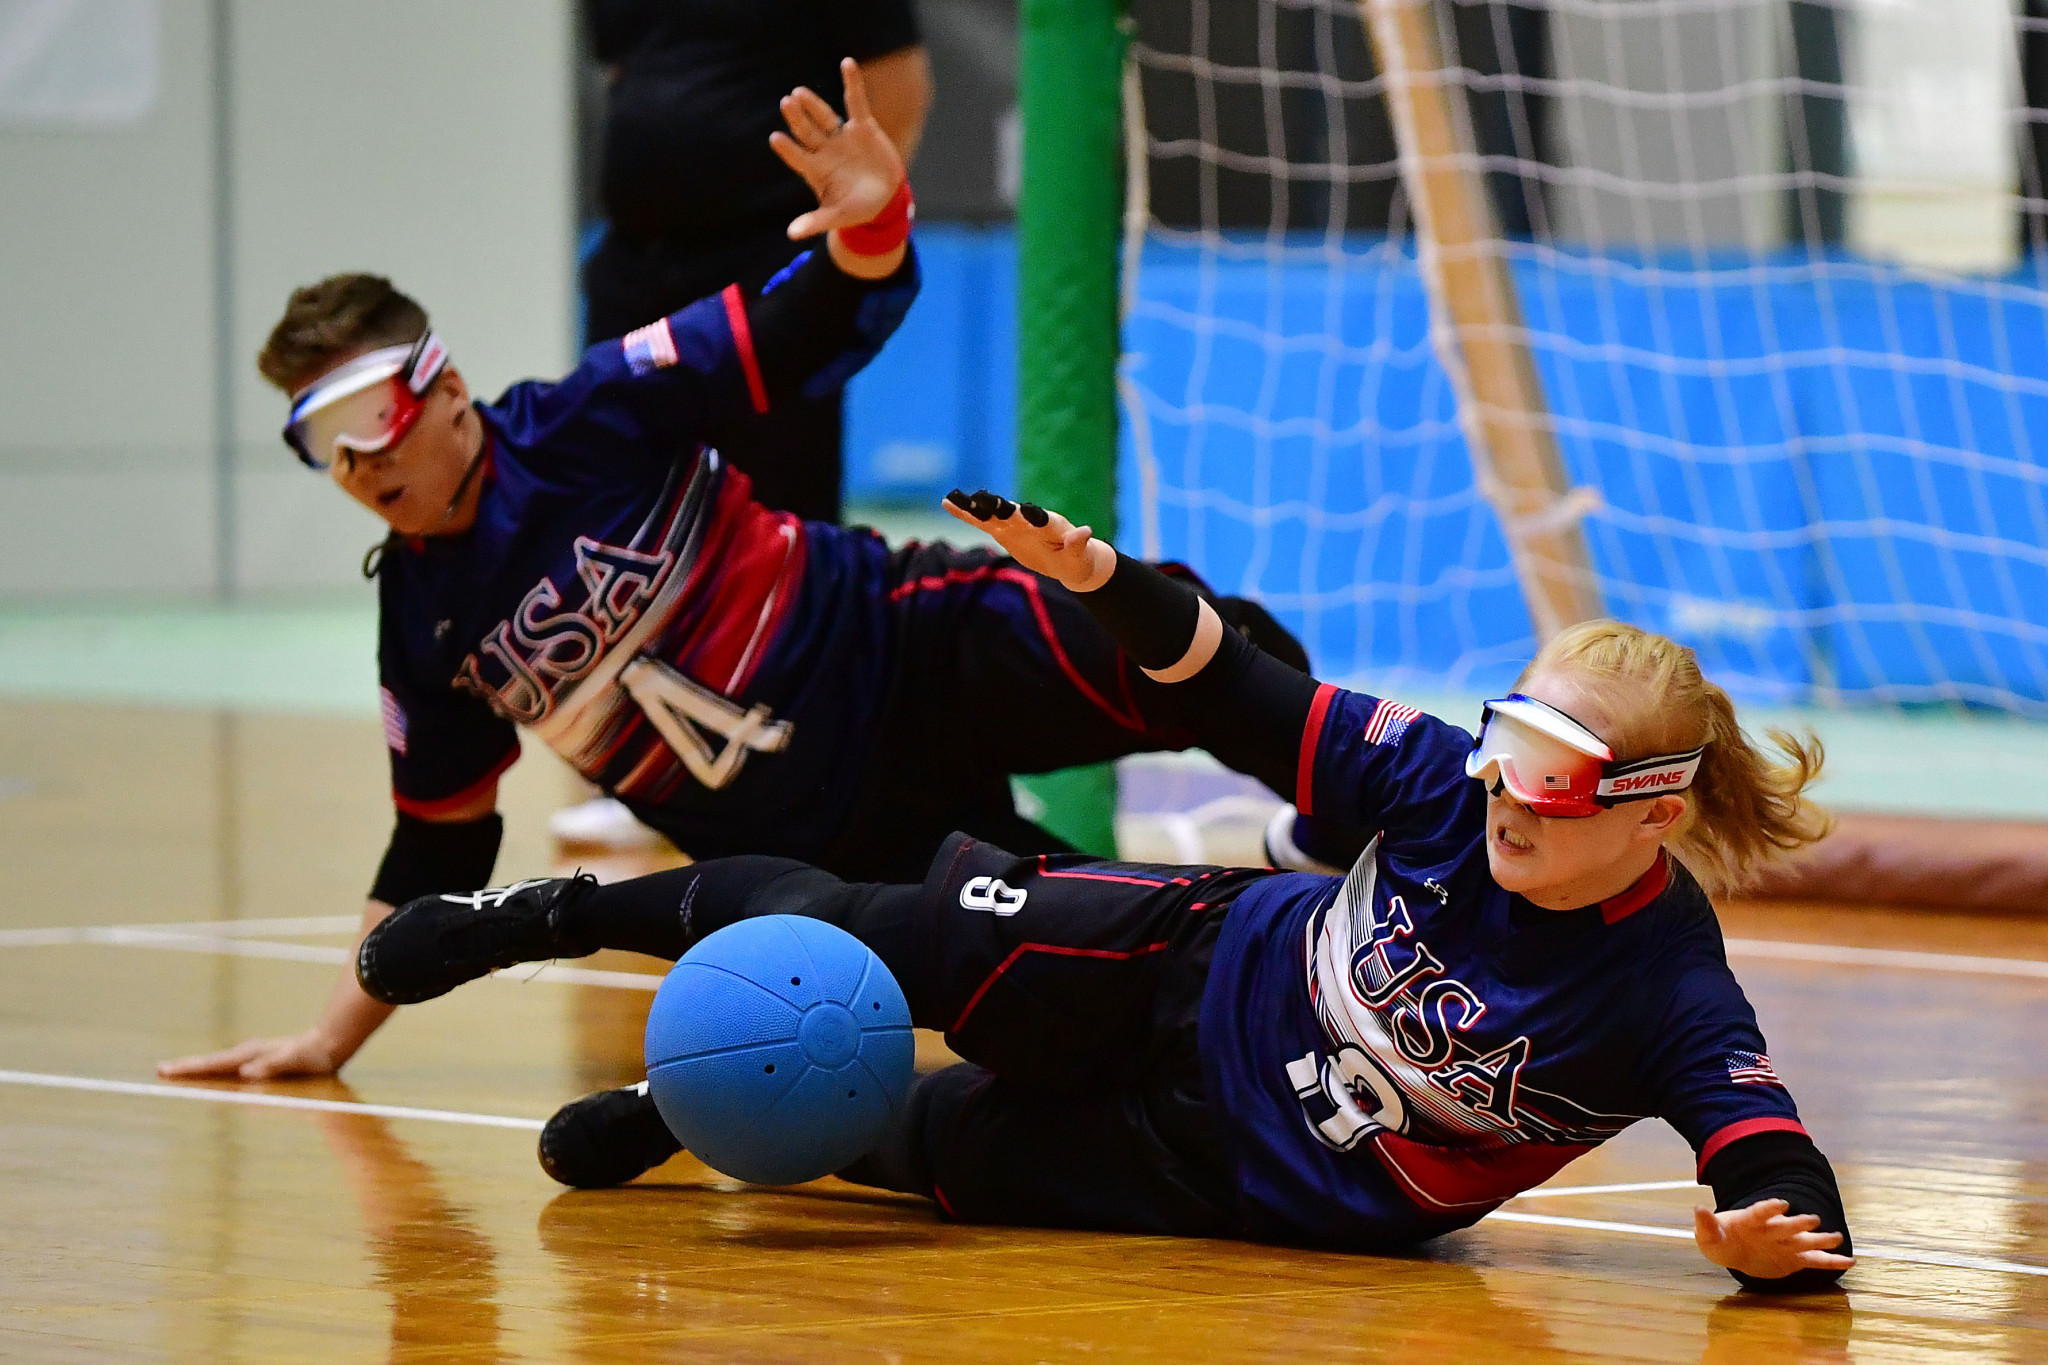 Goalball players will need to adhere to a new set of measures to combat the spread of COVID-19 if the sport is to safely return amid the pandemic ©Getty Images